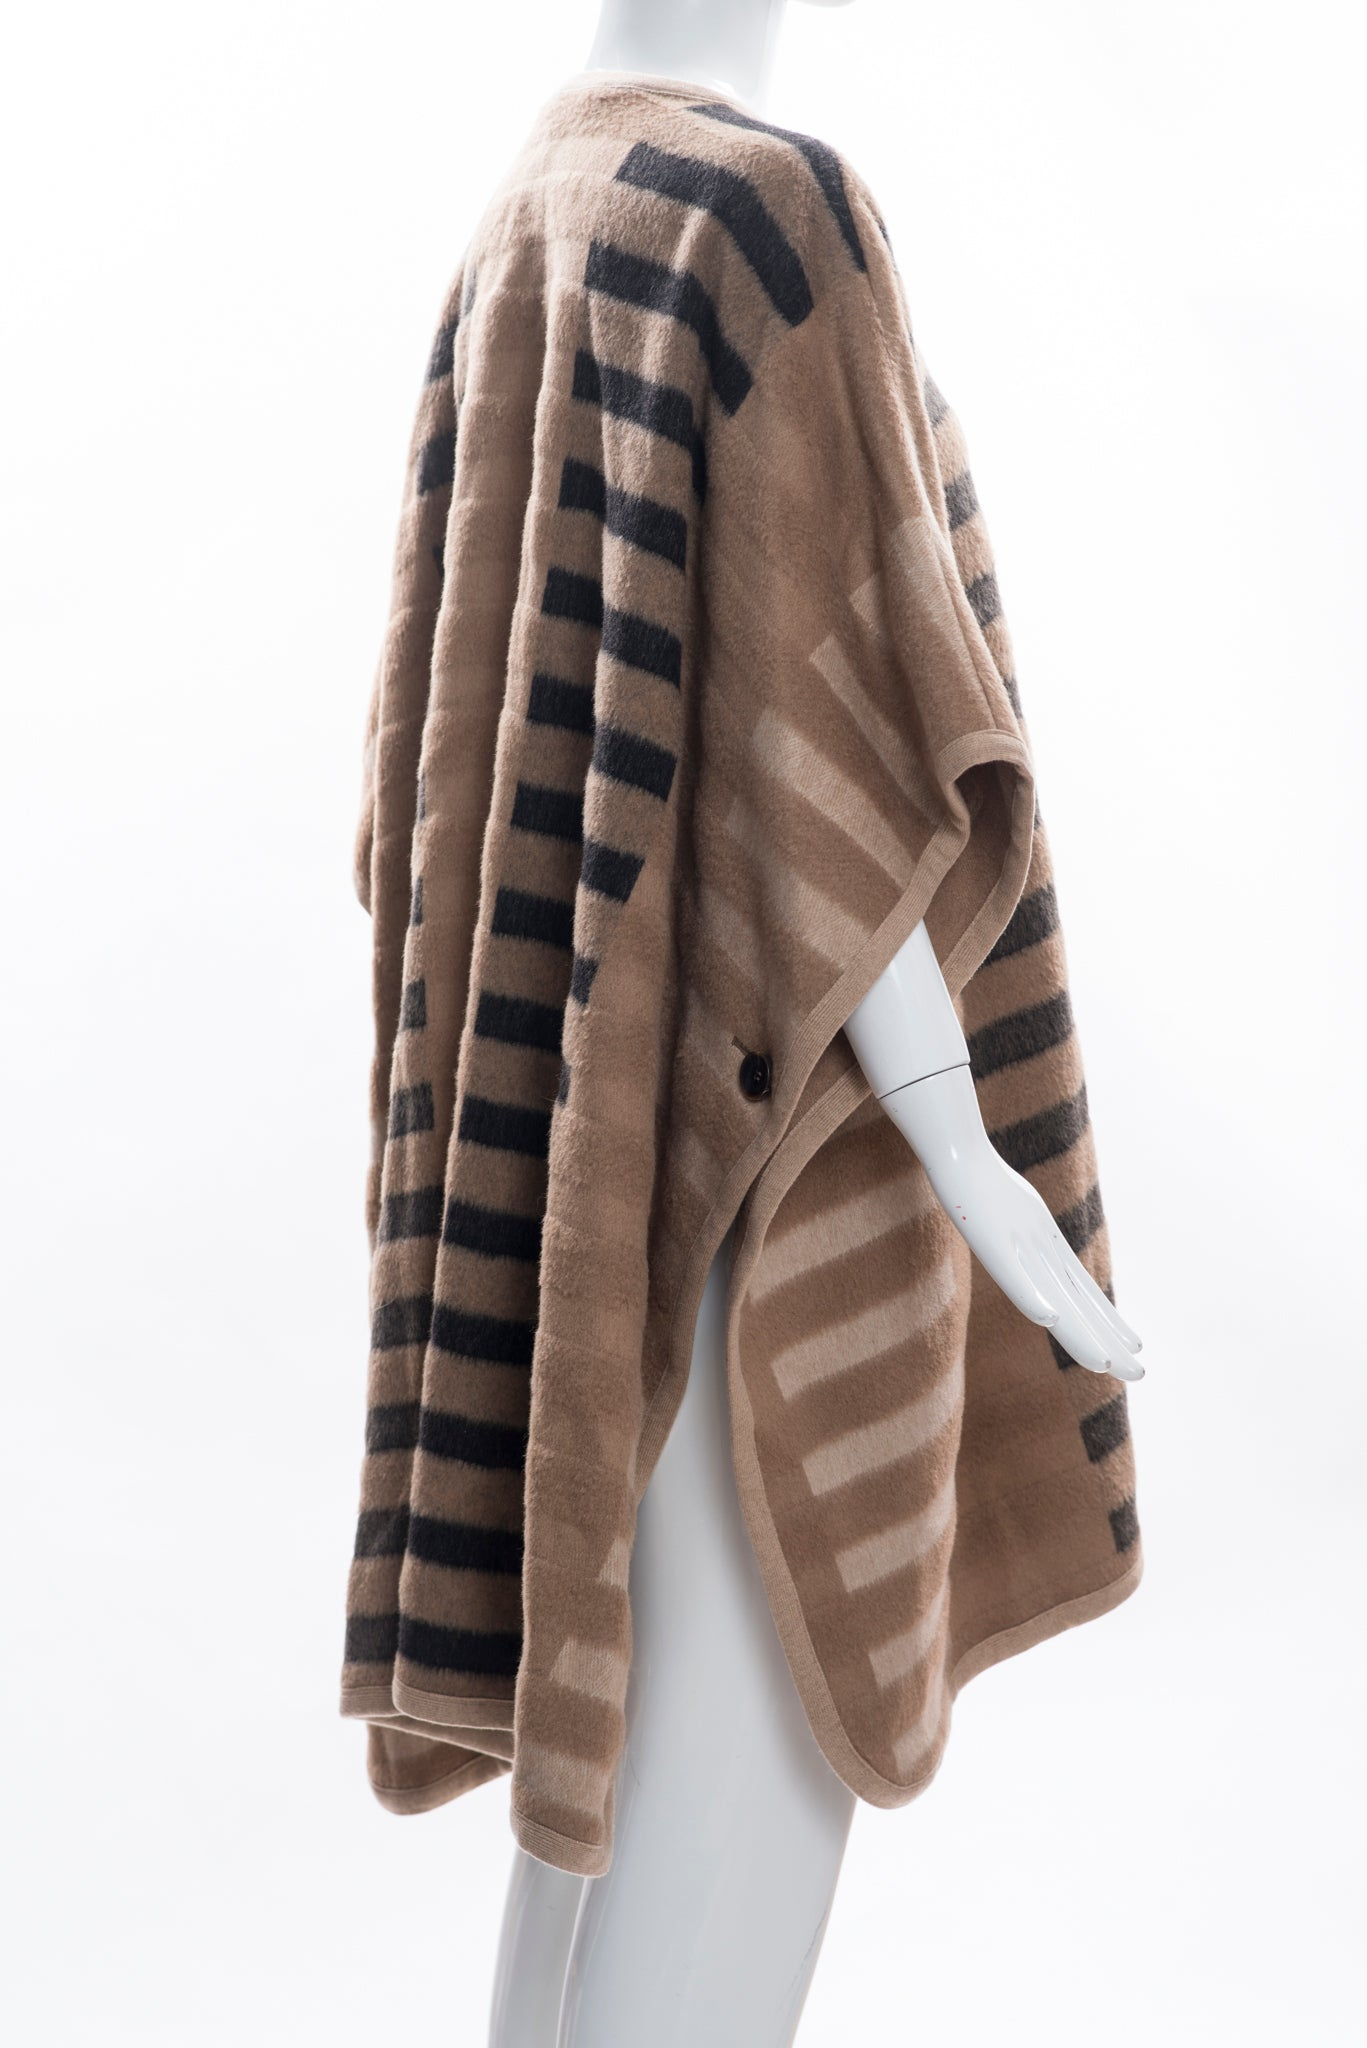 $2495 ESCADA Caramel Camel Mixed-Tone Striped Bar Print Blanket Cape Poncho S GC